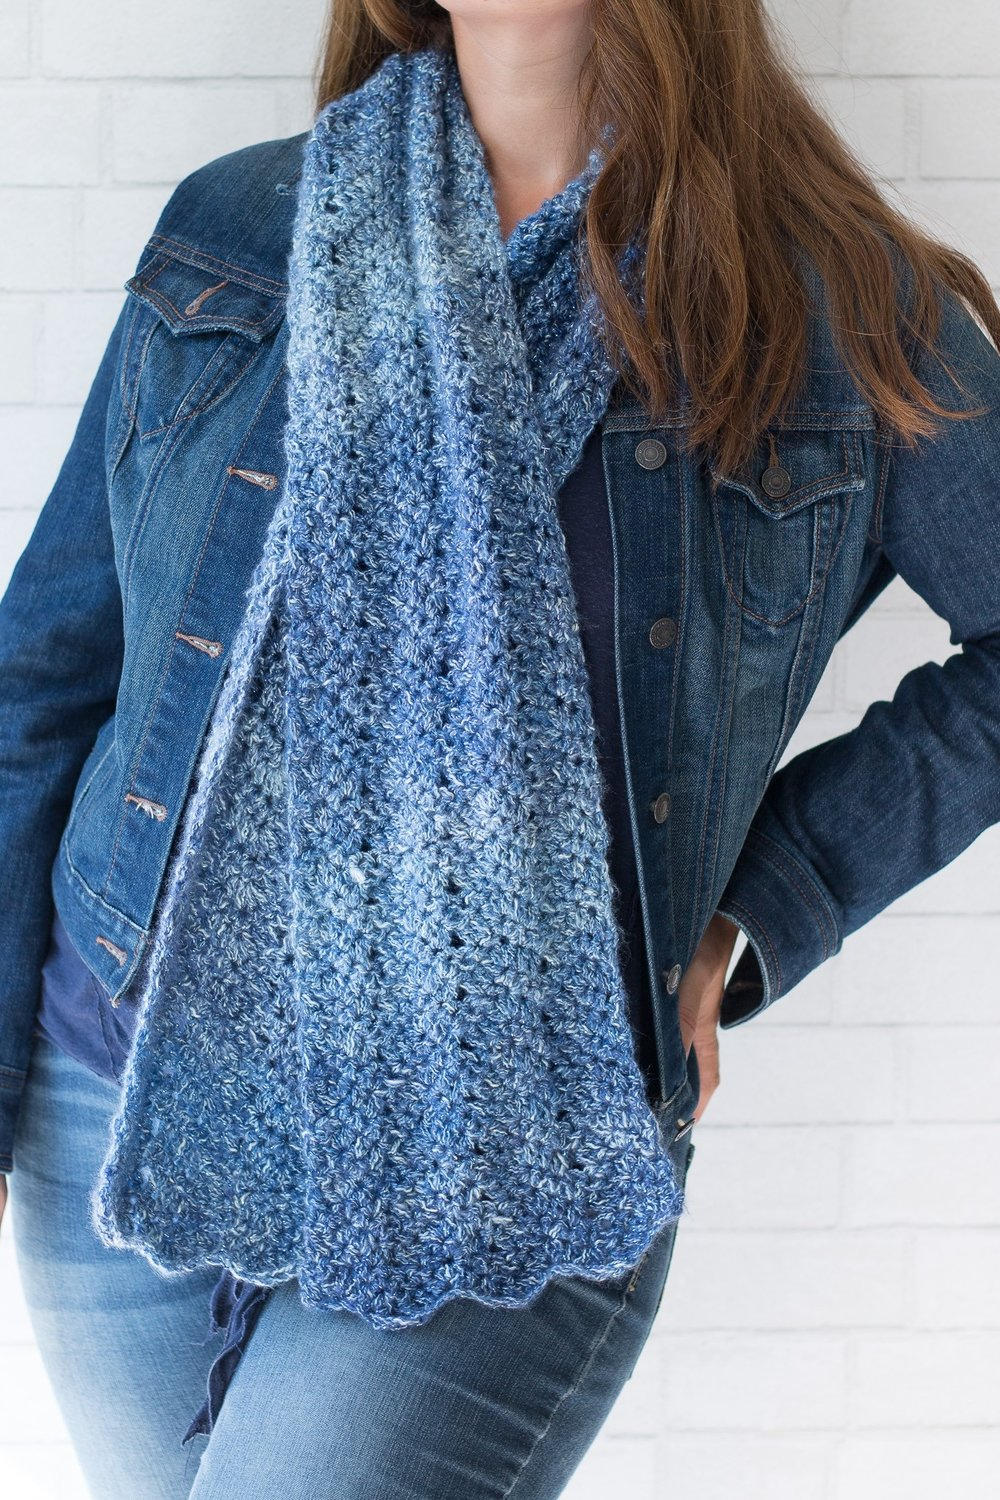 Luna Chevron Scarf by Rescued Paw Designs